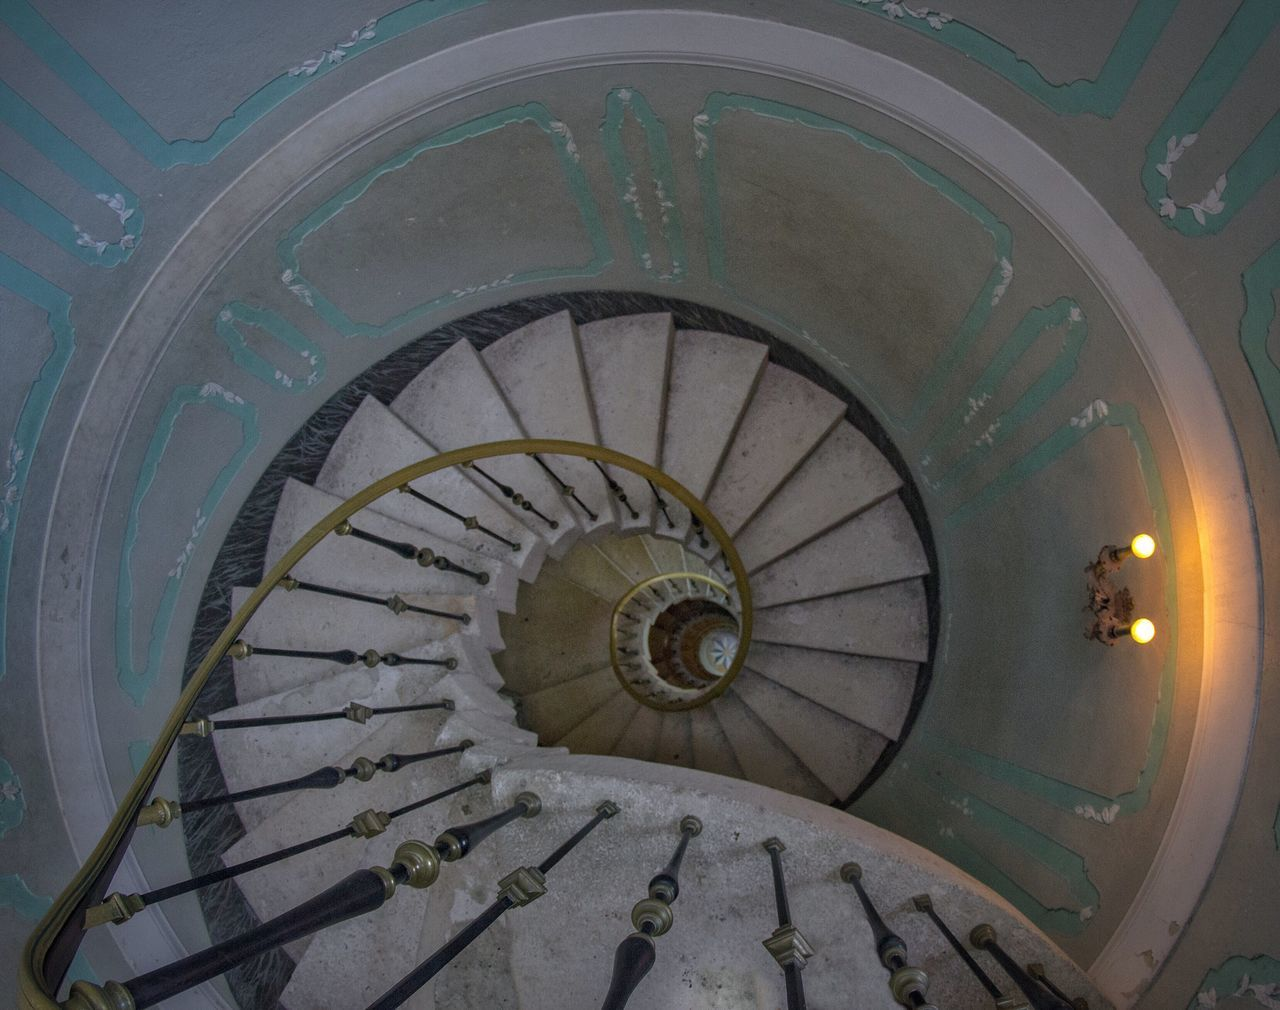 The Downward Spiral Steps And Staircases Steps Staircase Spiral Railing Built Structure Architecture No People Indoors  Day